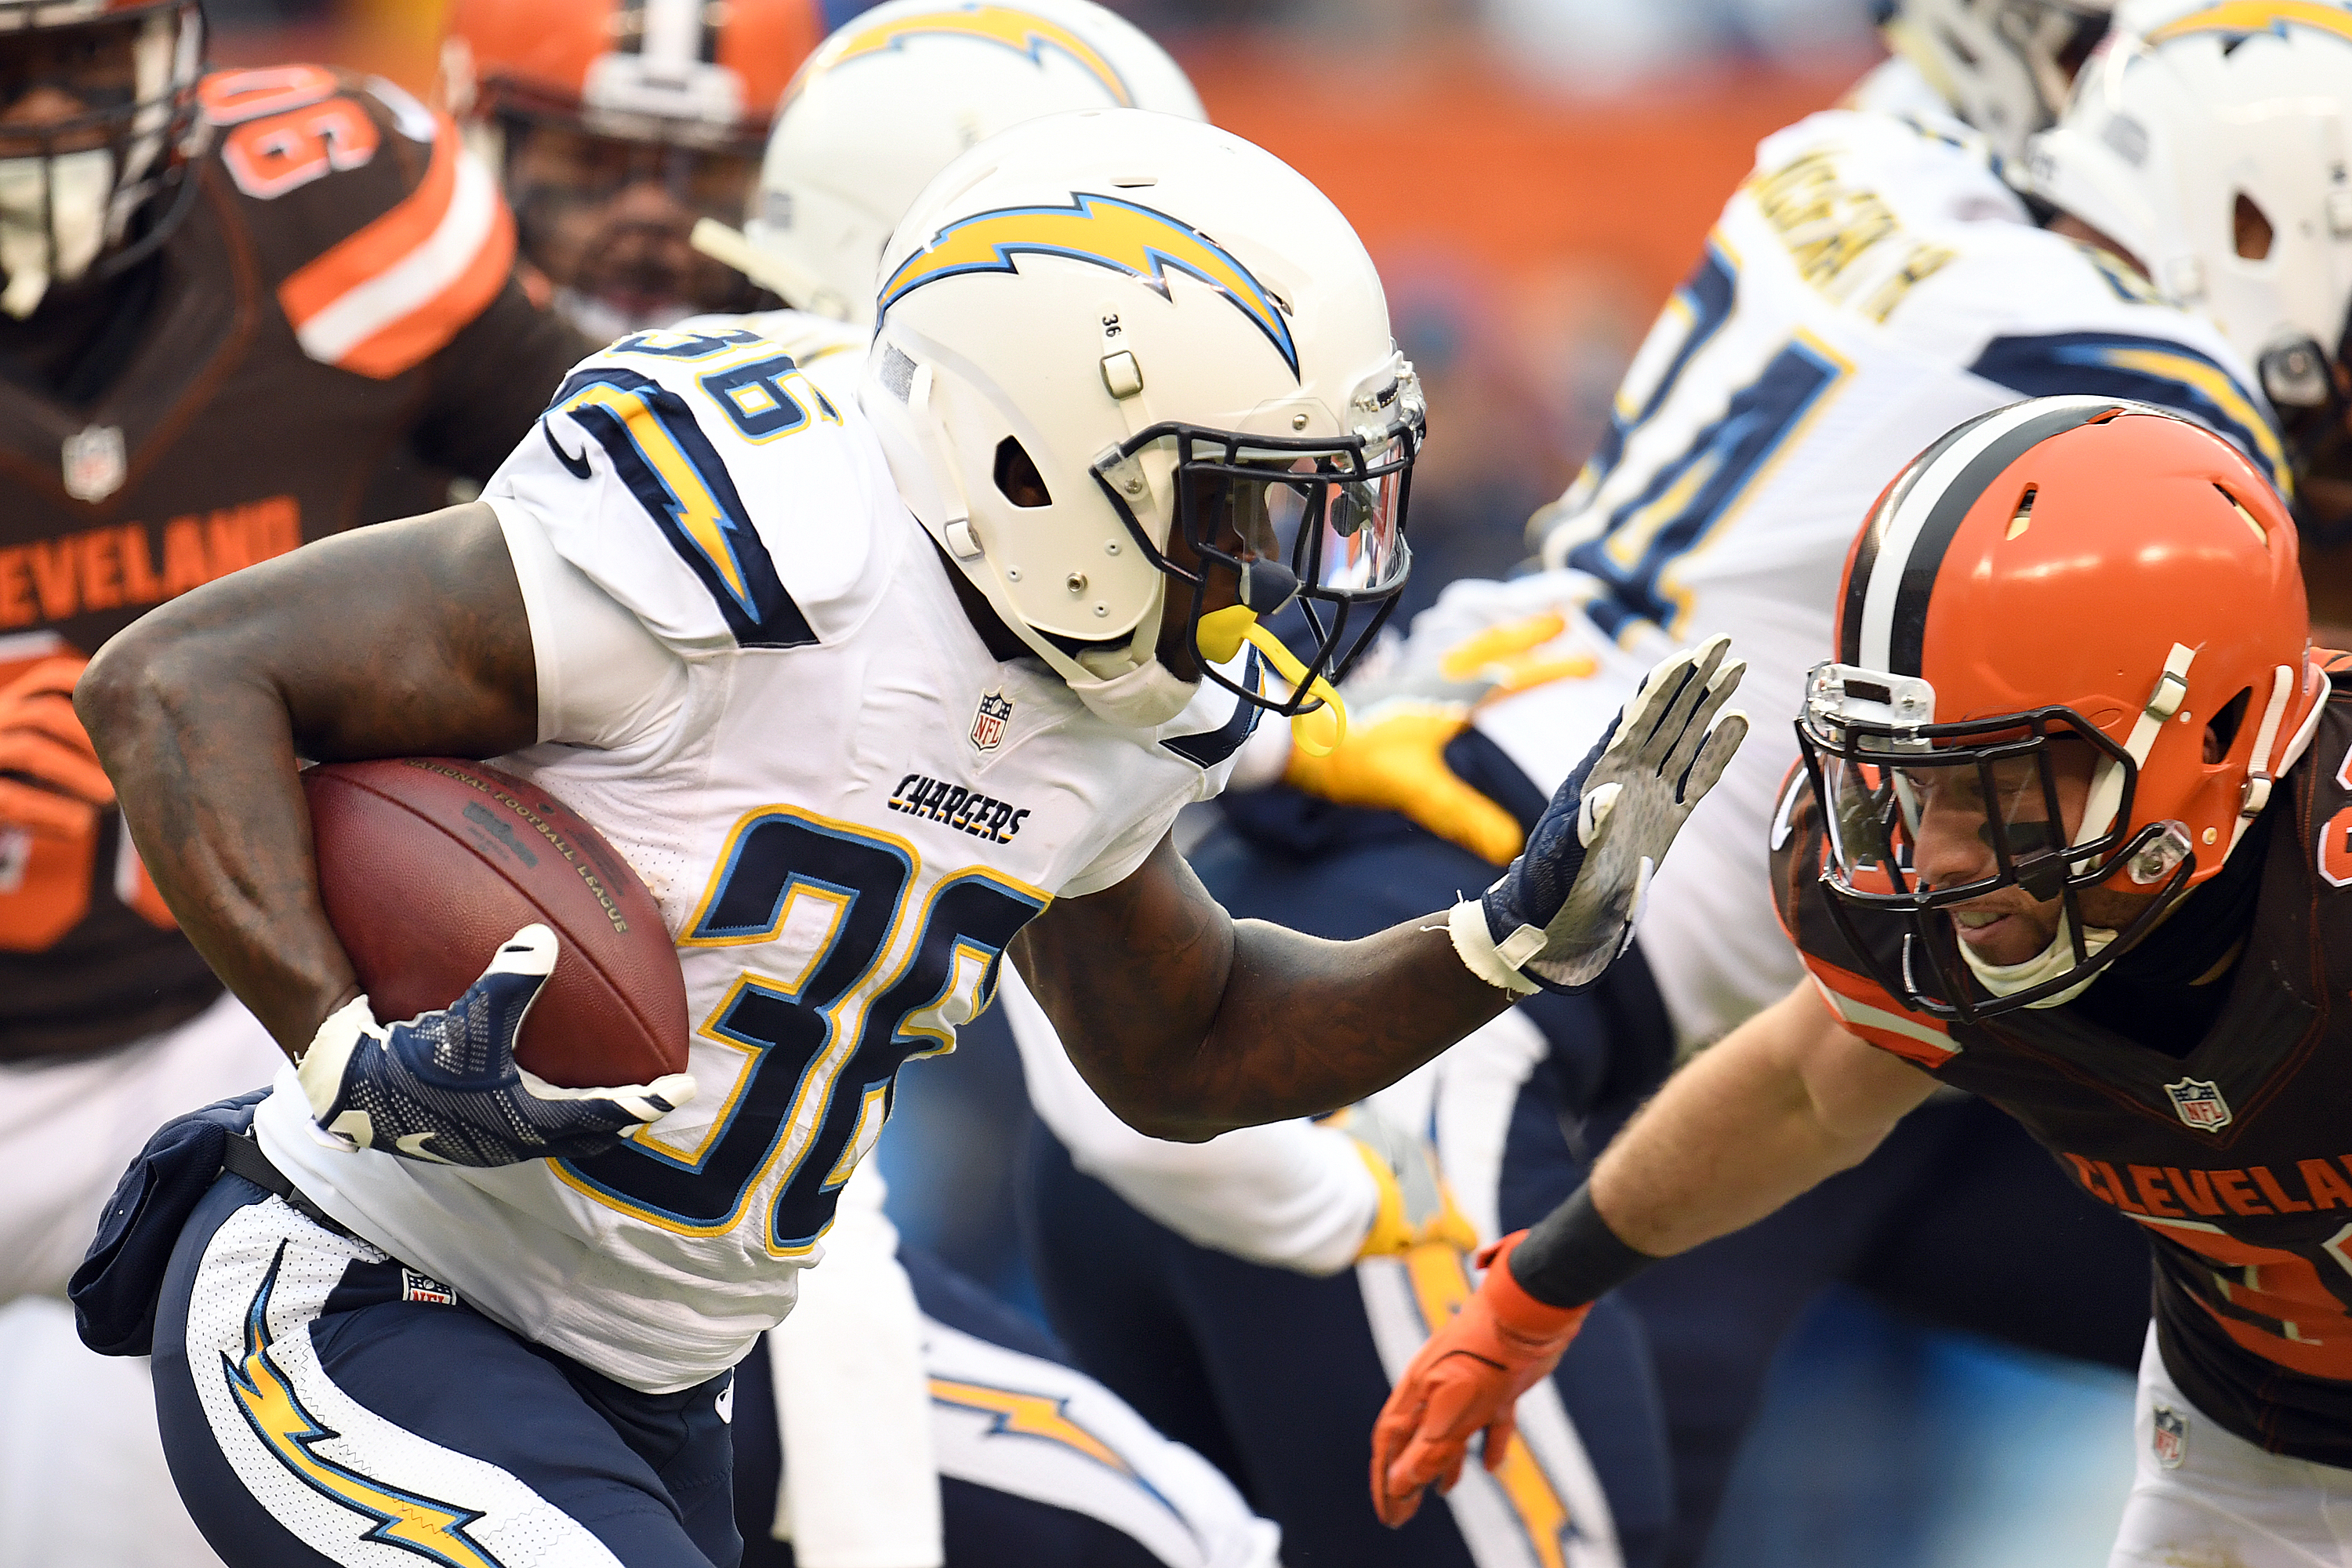 630498280-san-diego-chargers-v-cleveland-browns.jpg